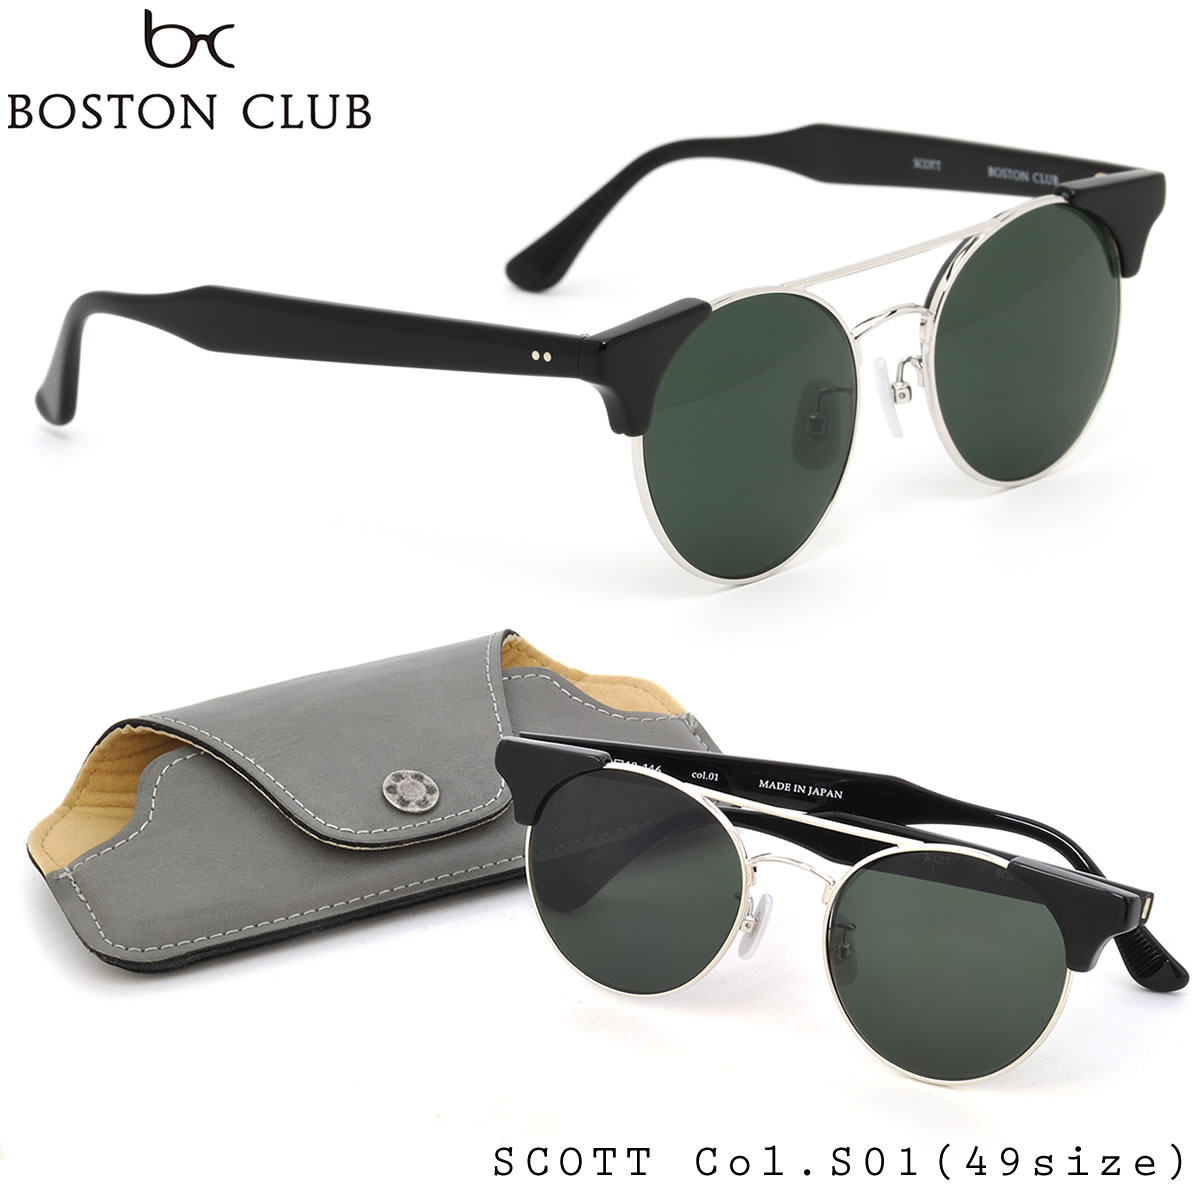 scott sunglasses eaoi  scott sunglasses